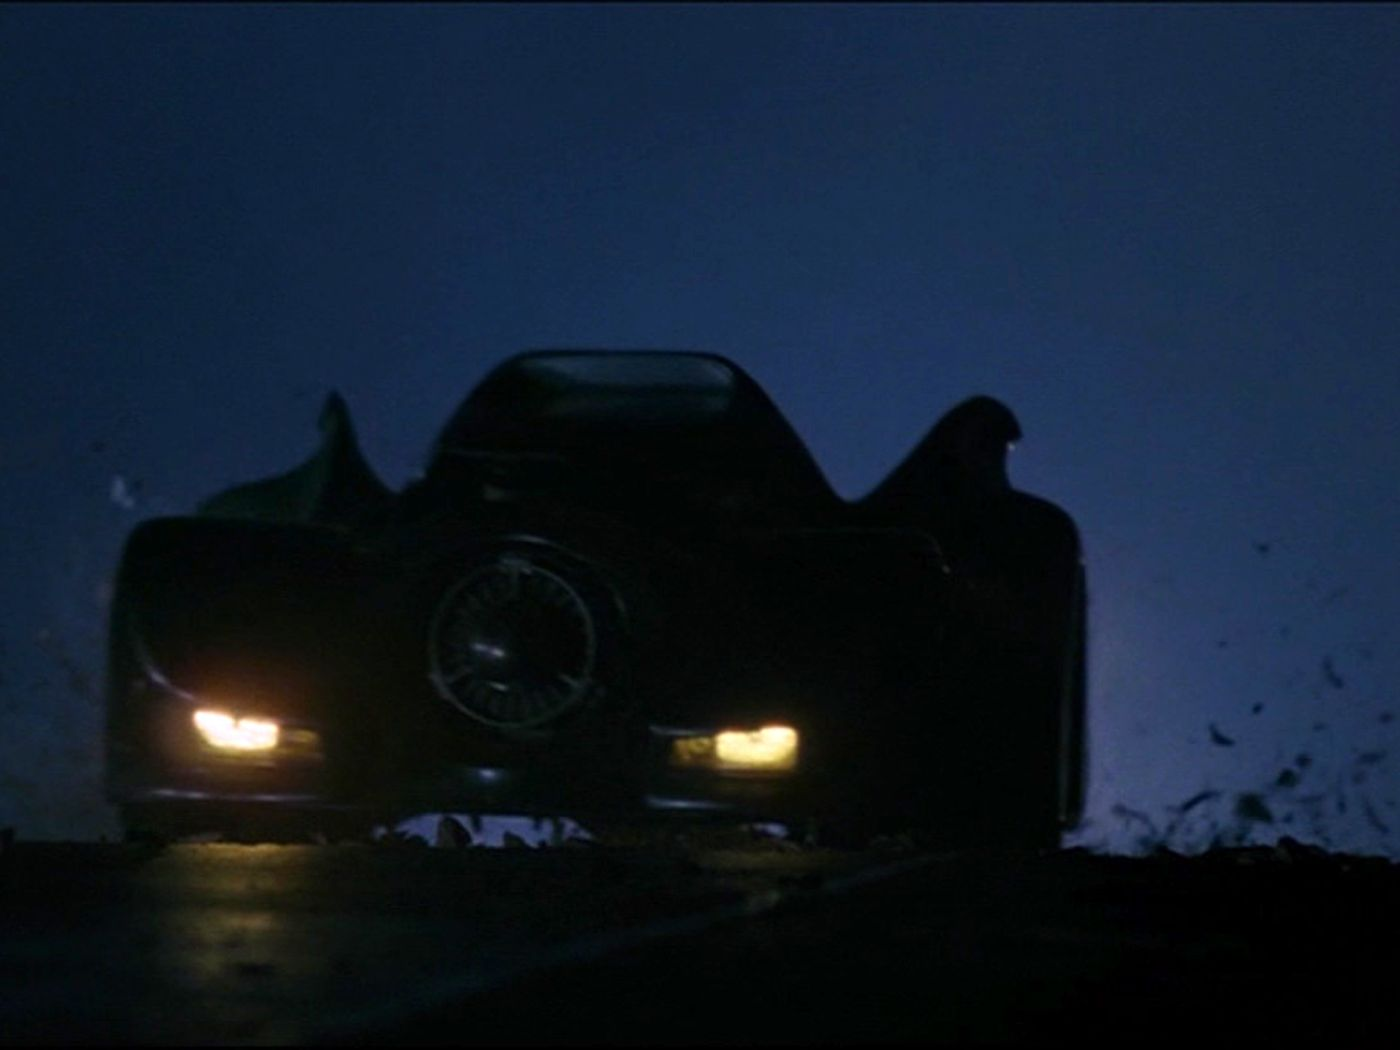 Batmobile In The Dark Wallpaper 1400x1050